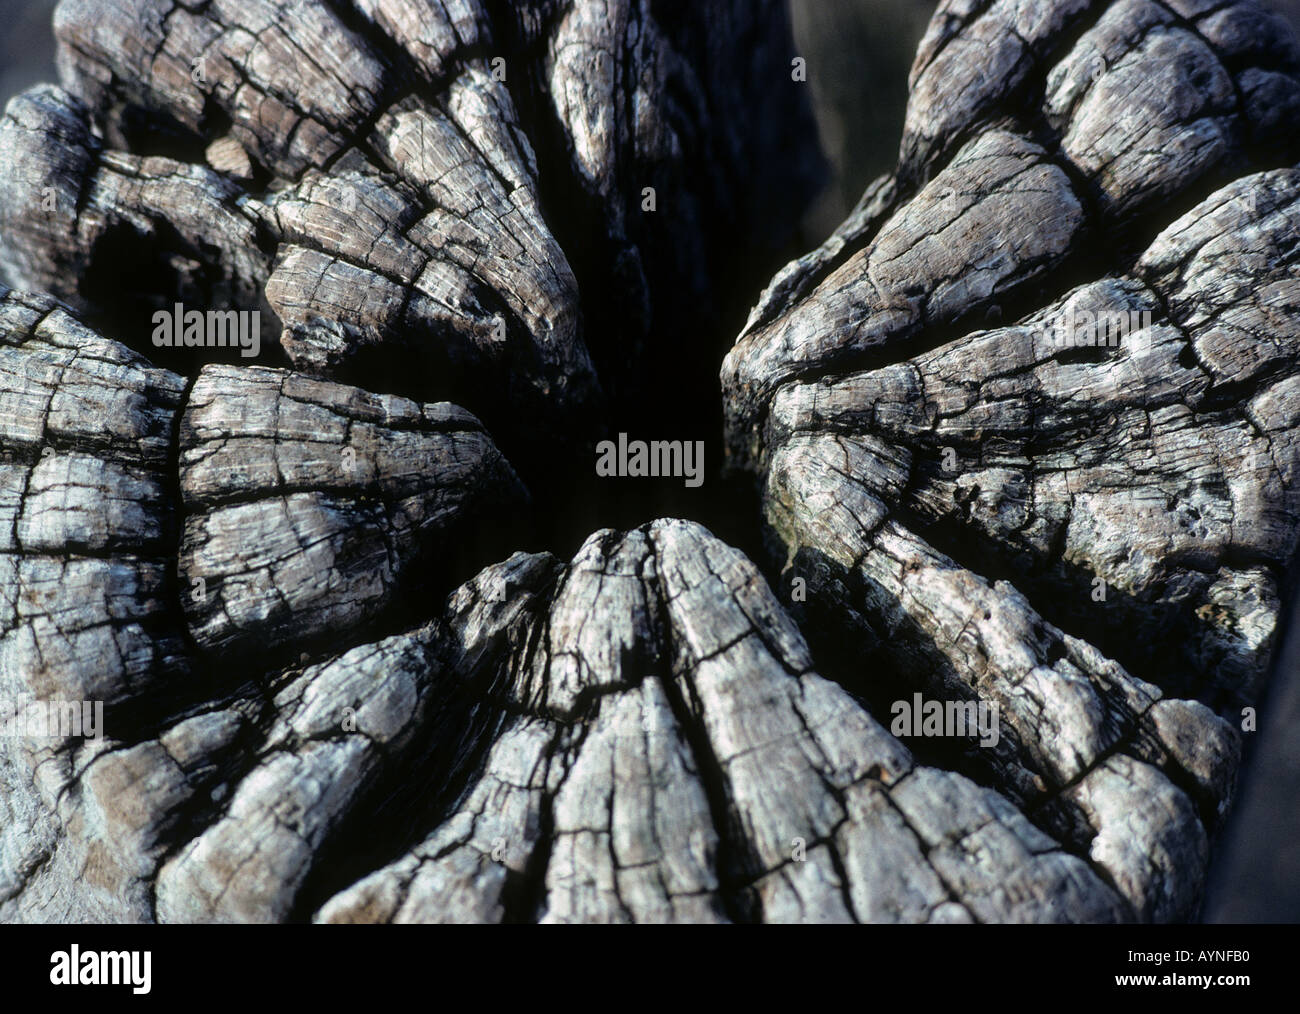 Close up of weathered bleached timber stump supporting a derelict pier - Stock Image